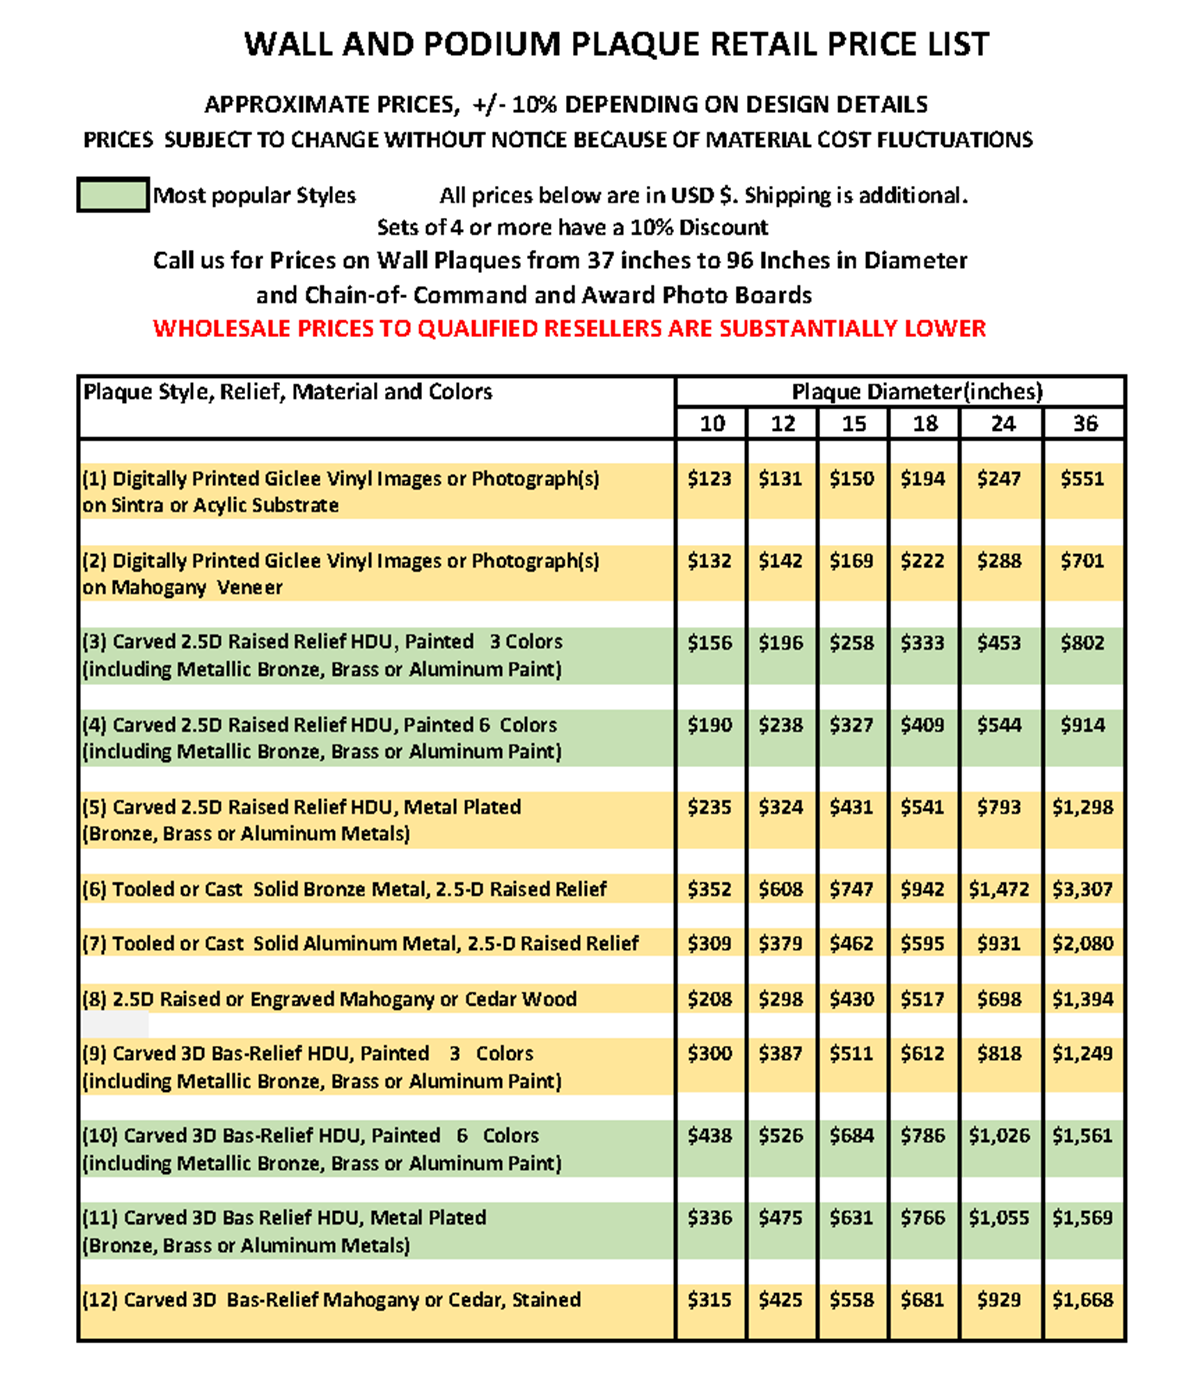 X33006 - Retail Price List for Round Seal Wall Plaques (click on picture to expand)